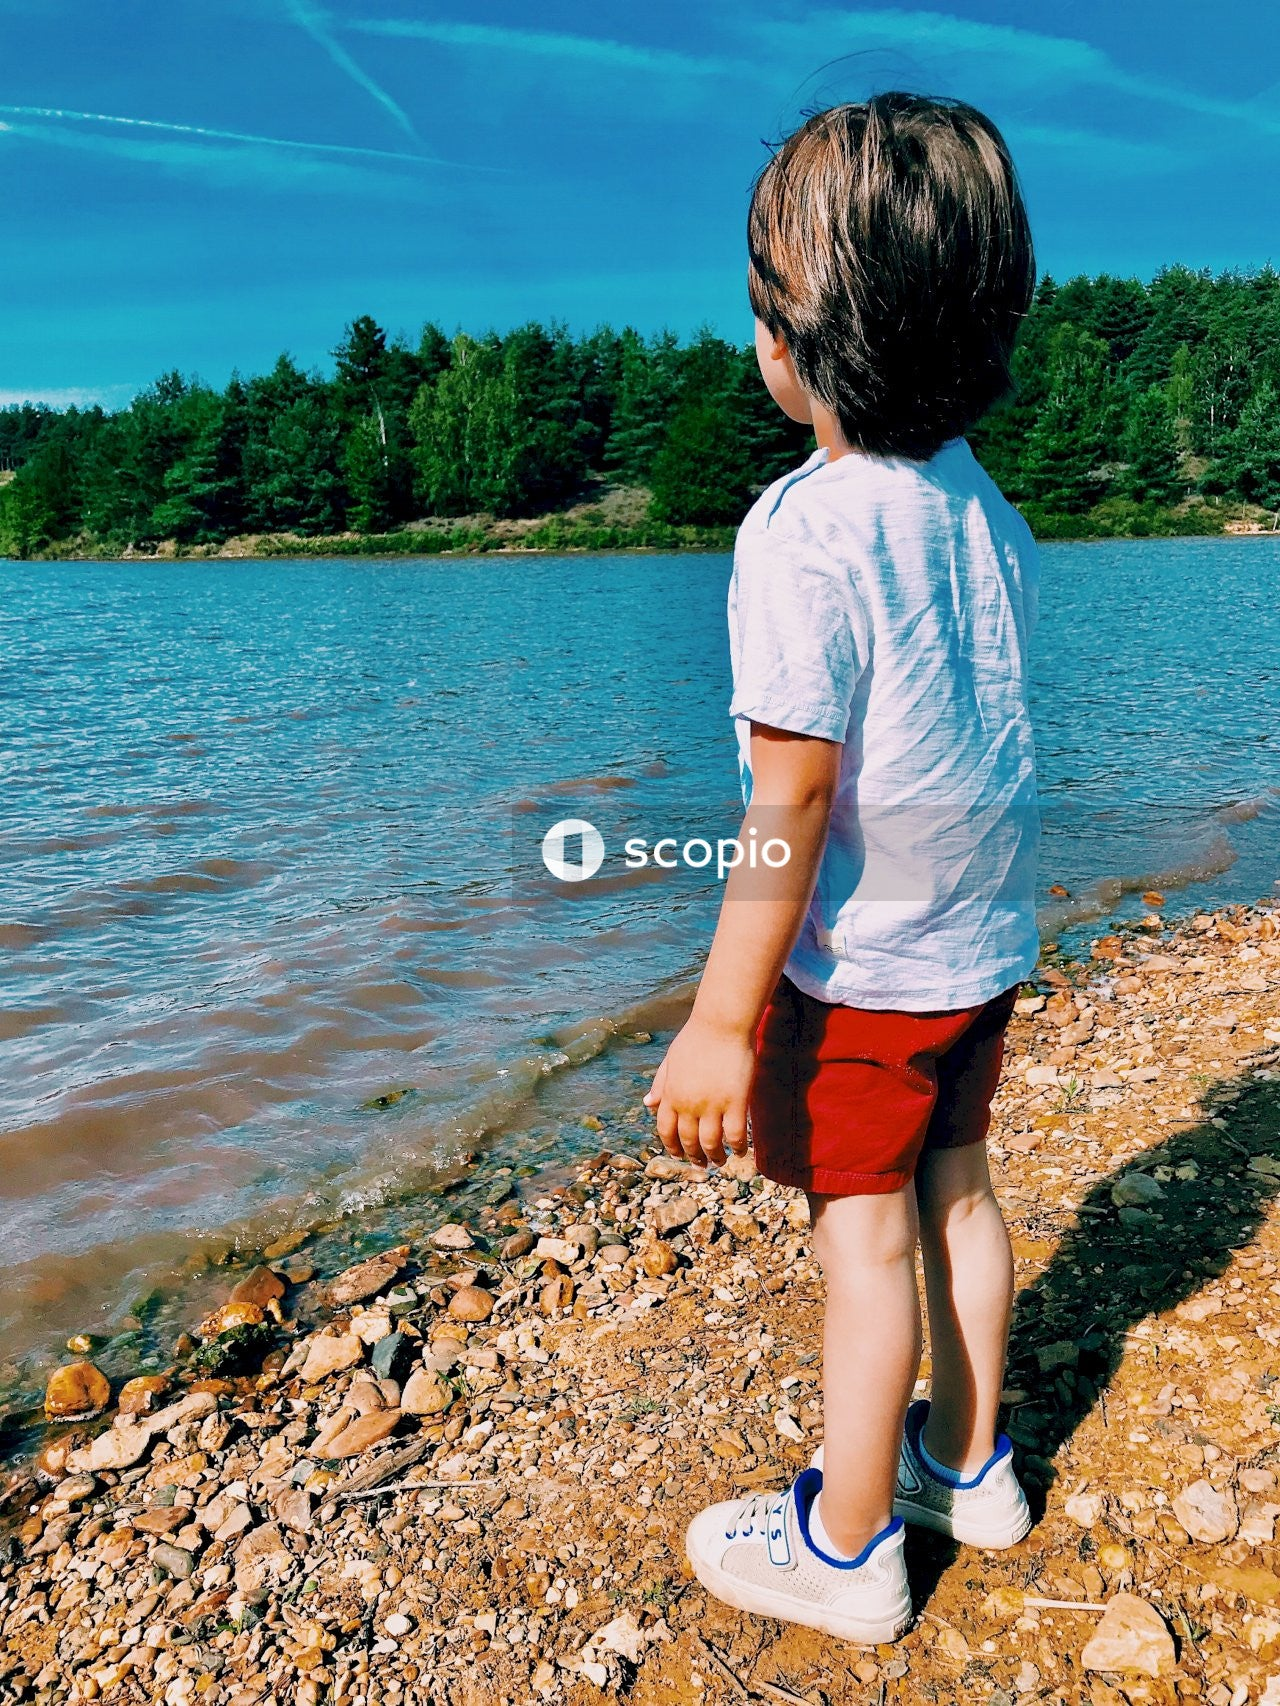 Child wearing white t-shirt standing and facing on body of water